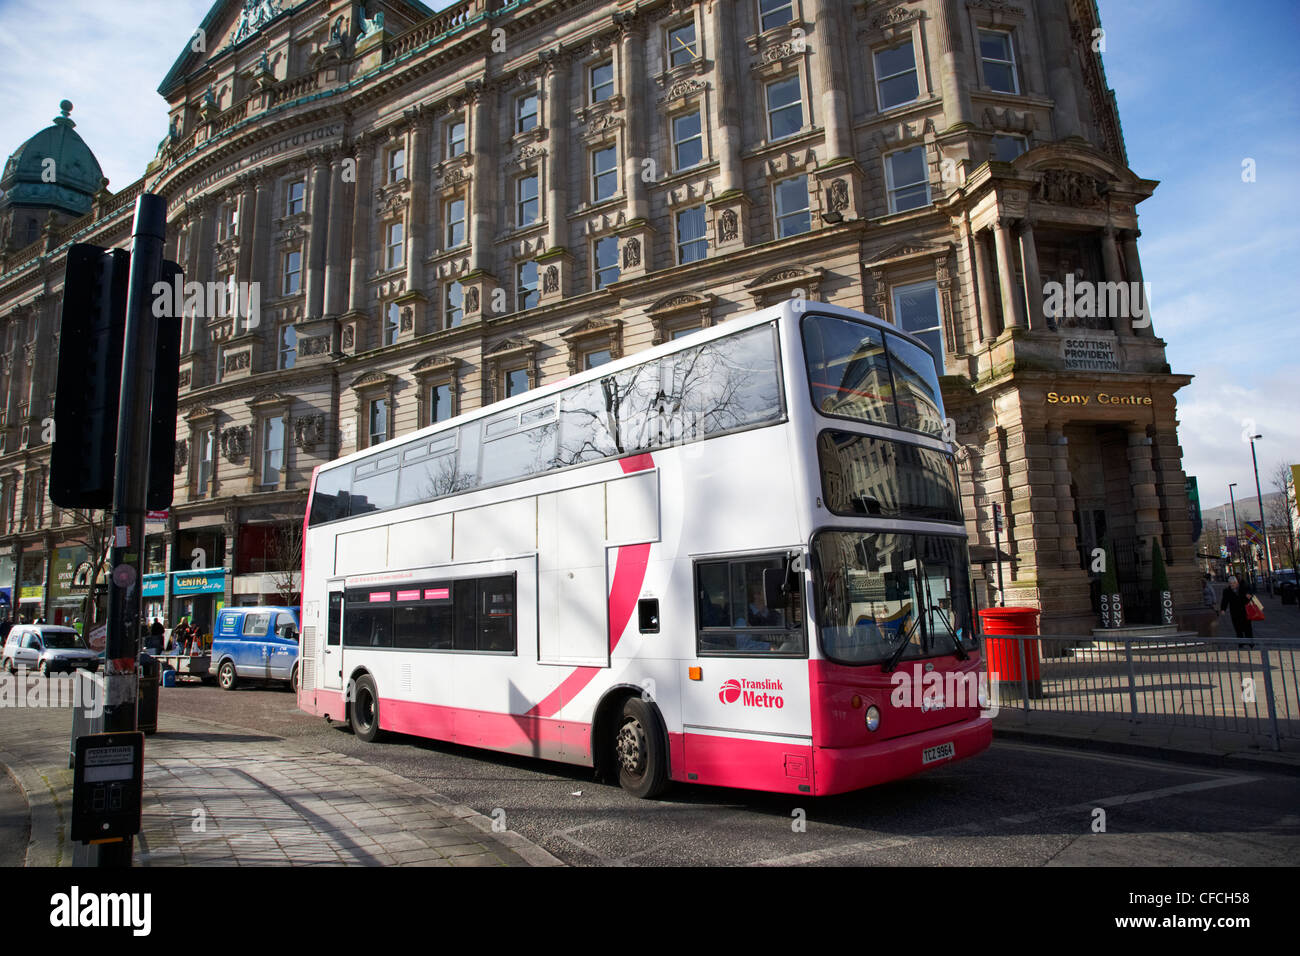 belfast metro citybus double deck bus on donegal square west in front of the scottish provident institution building - Stock Image